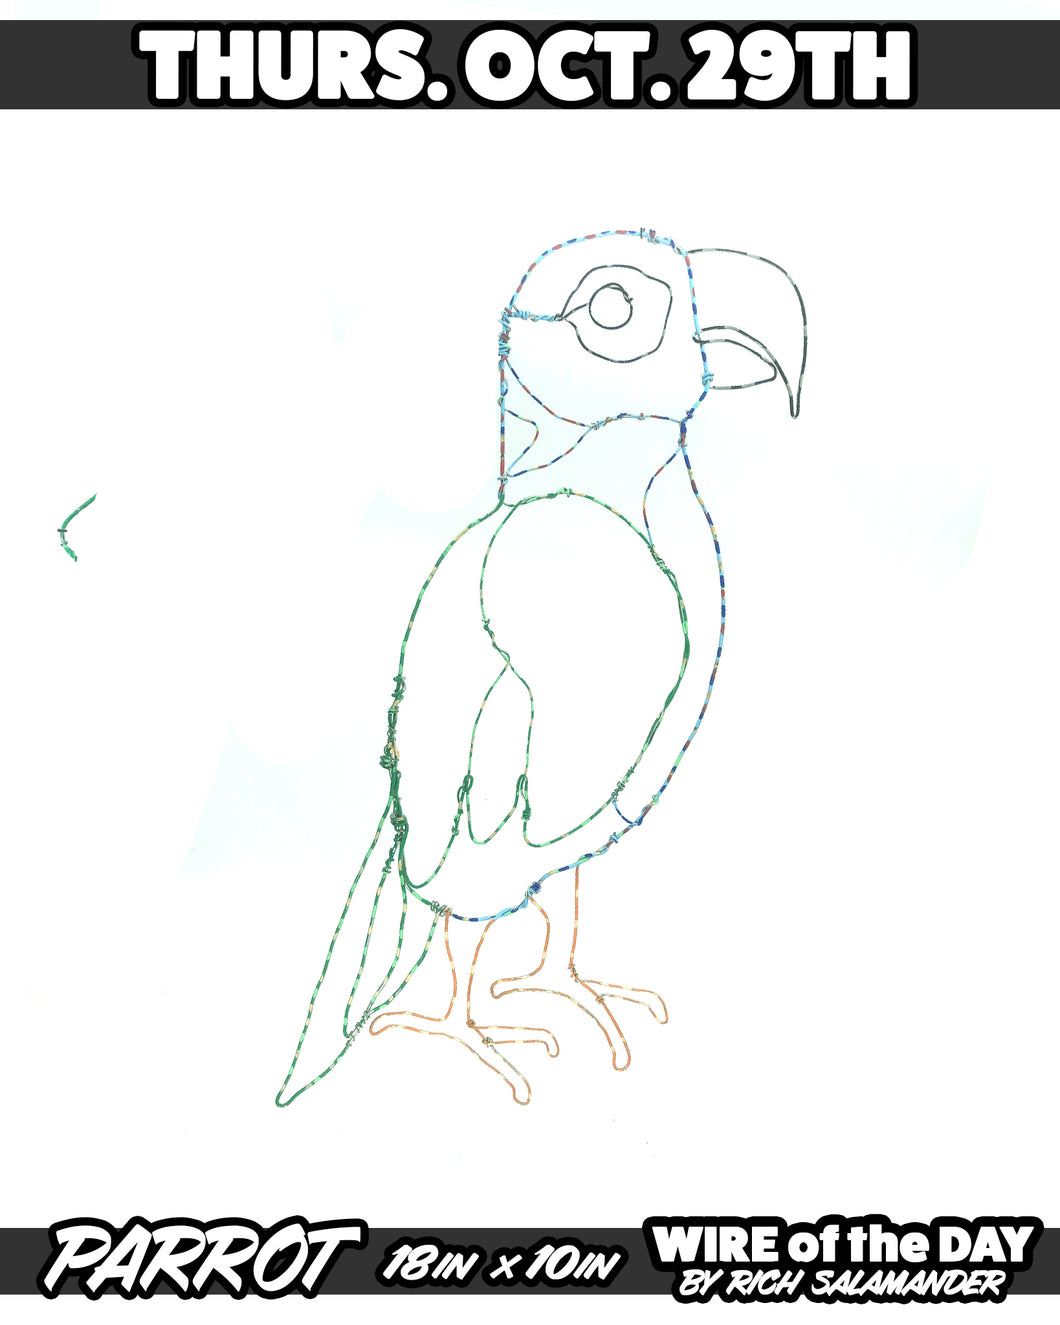 WIRE of the DAY PARROT